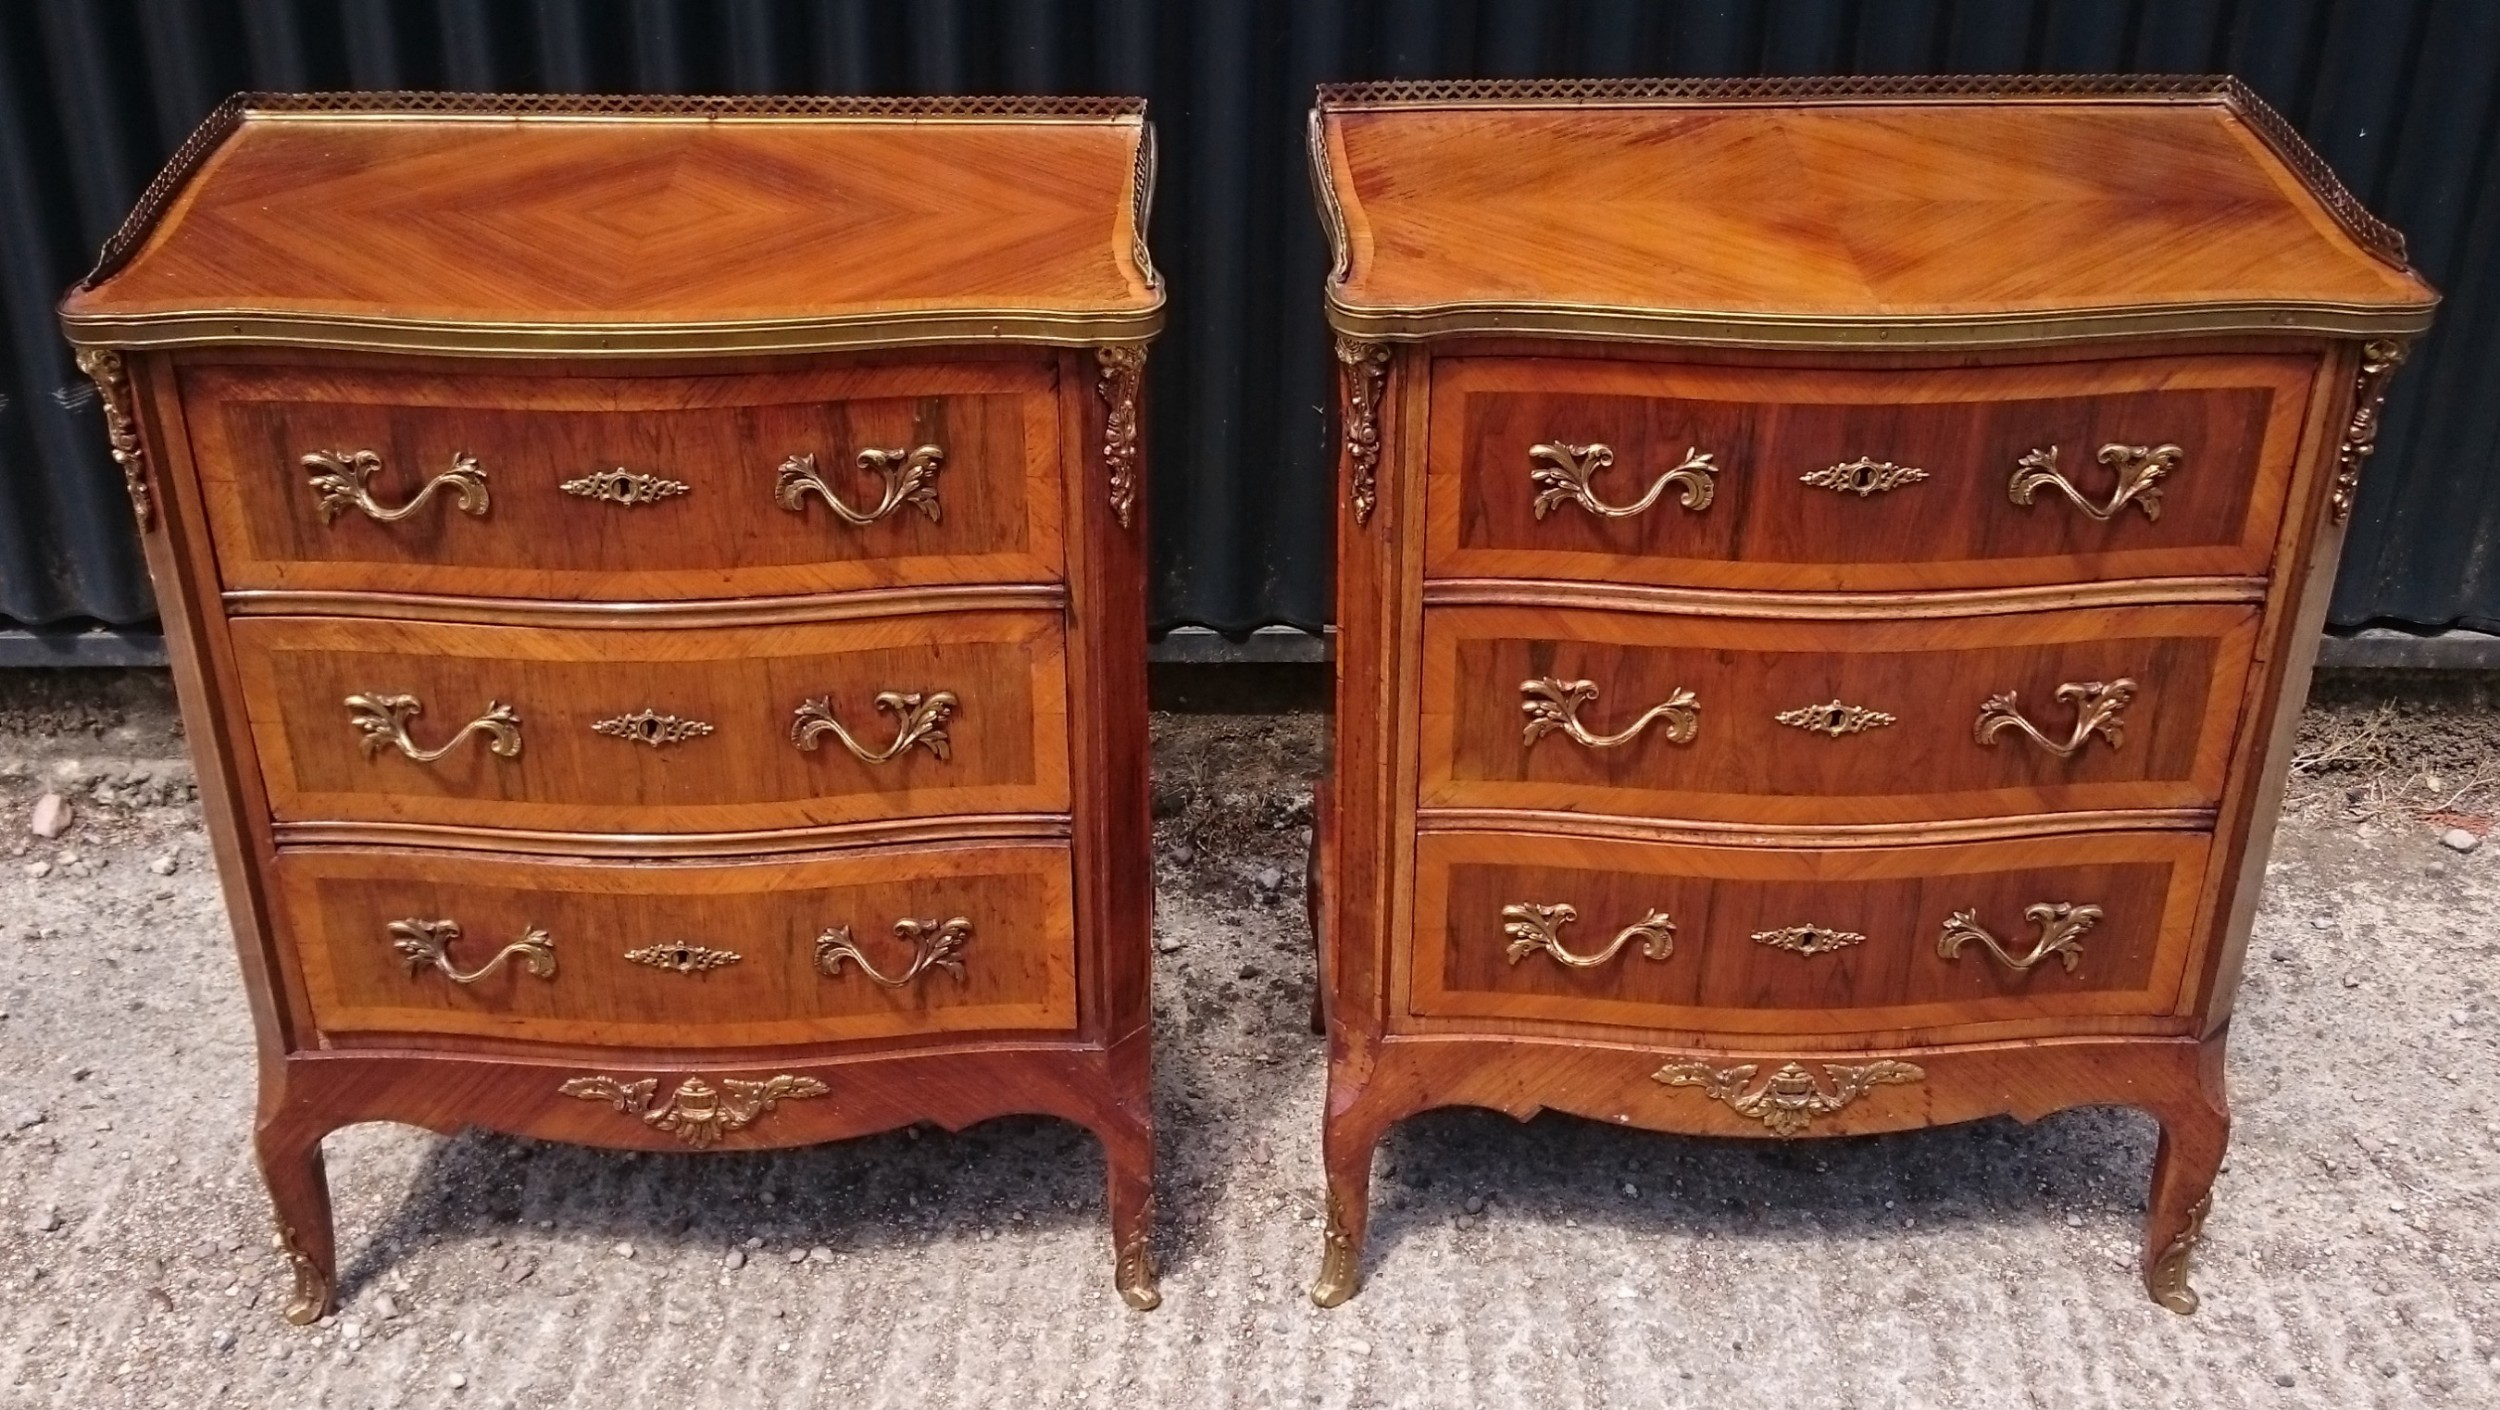 19th century pair of bedside cupboards